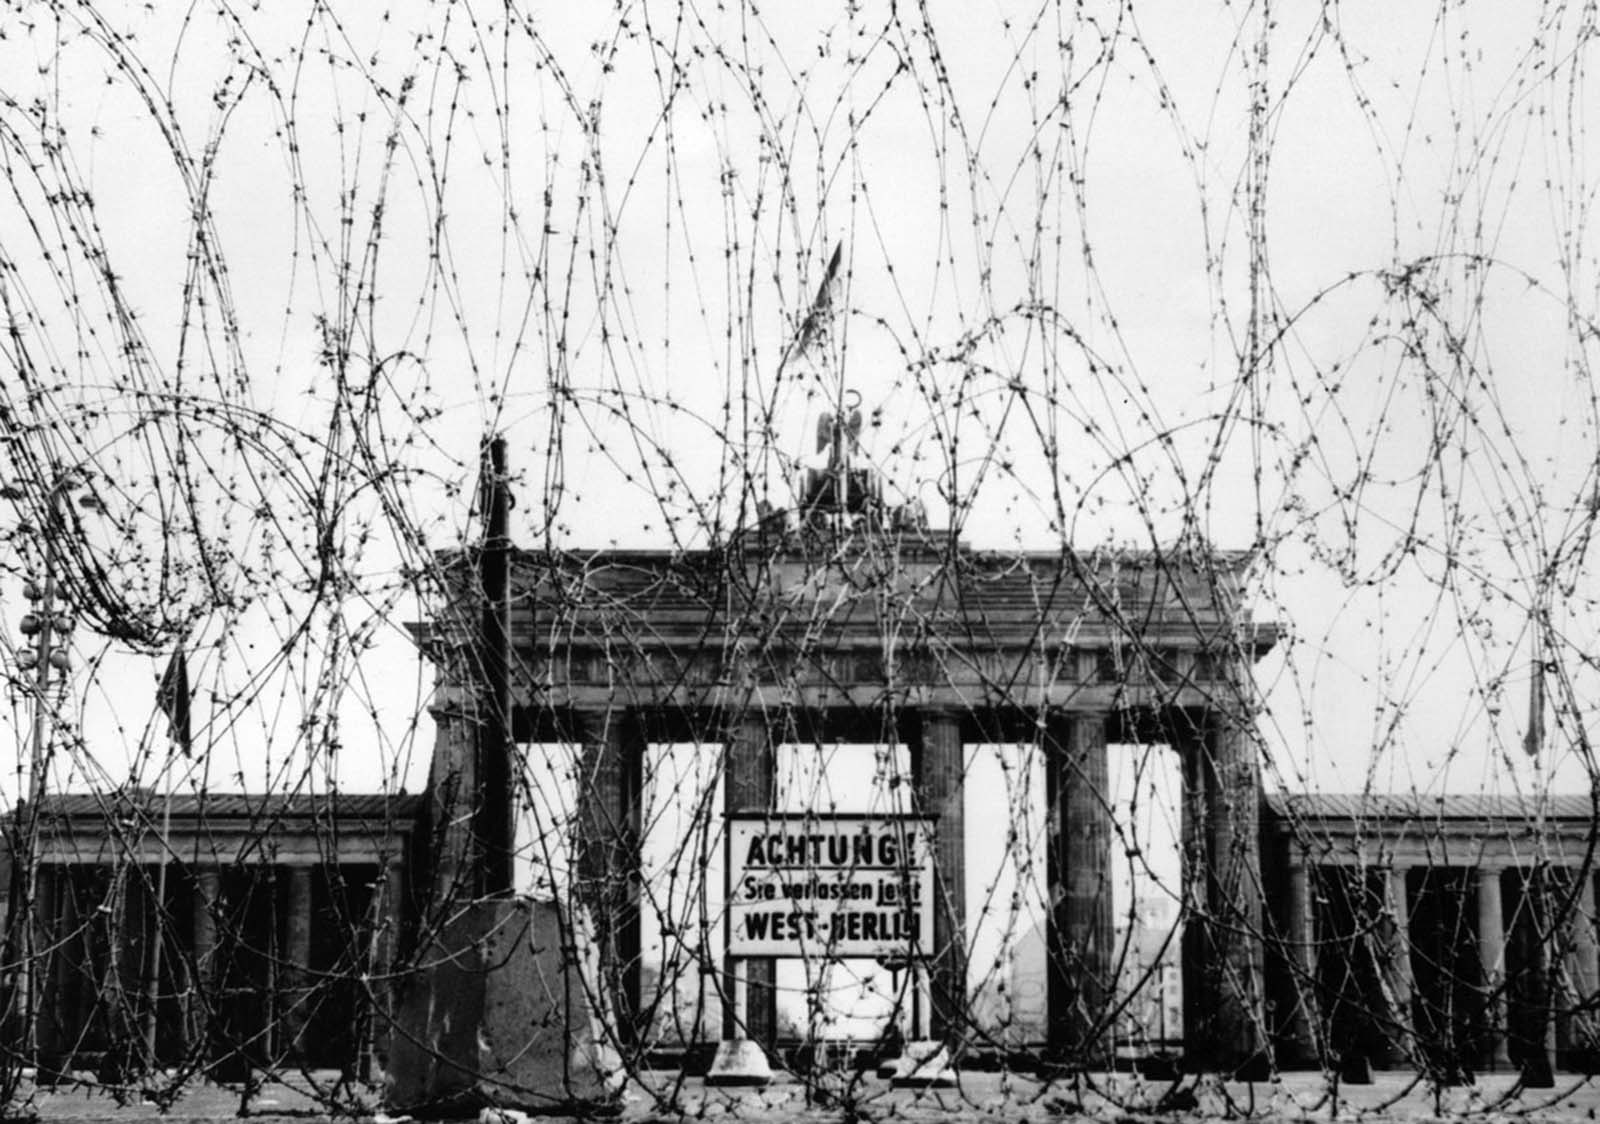 Barbed wire on the west side of the Brandenburg gate, put up as a